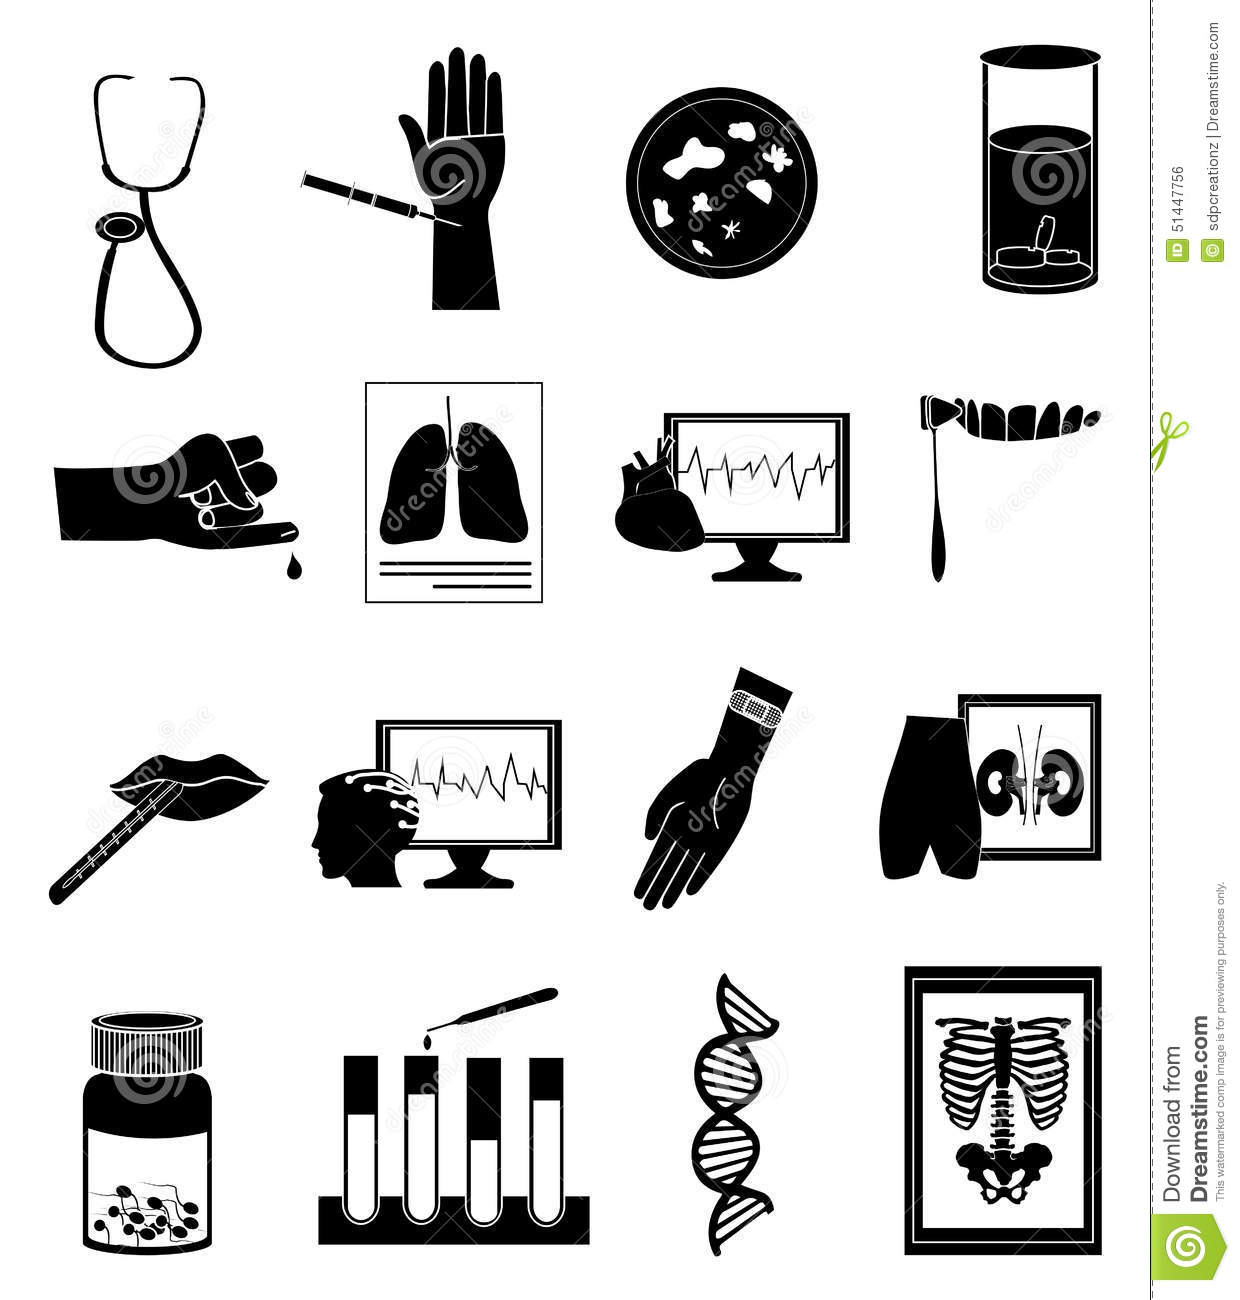 Stock Illustration Medical Tests Icons Set Black Image51447756 moreover Coloring Page Stiff Shoulder I11791 also Science Laboratory Tools Flat Design Icons Set likewise Letterheads moreover Chemical Laboratory Apparatus bdojmq dGHyatJcPZWa DS56iVBDHWVzZd 7CxOuKcIXs. on medical flask